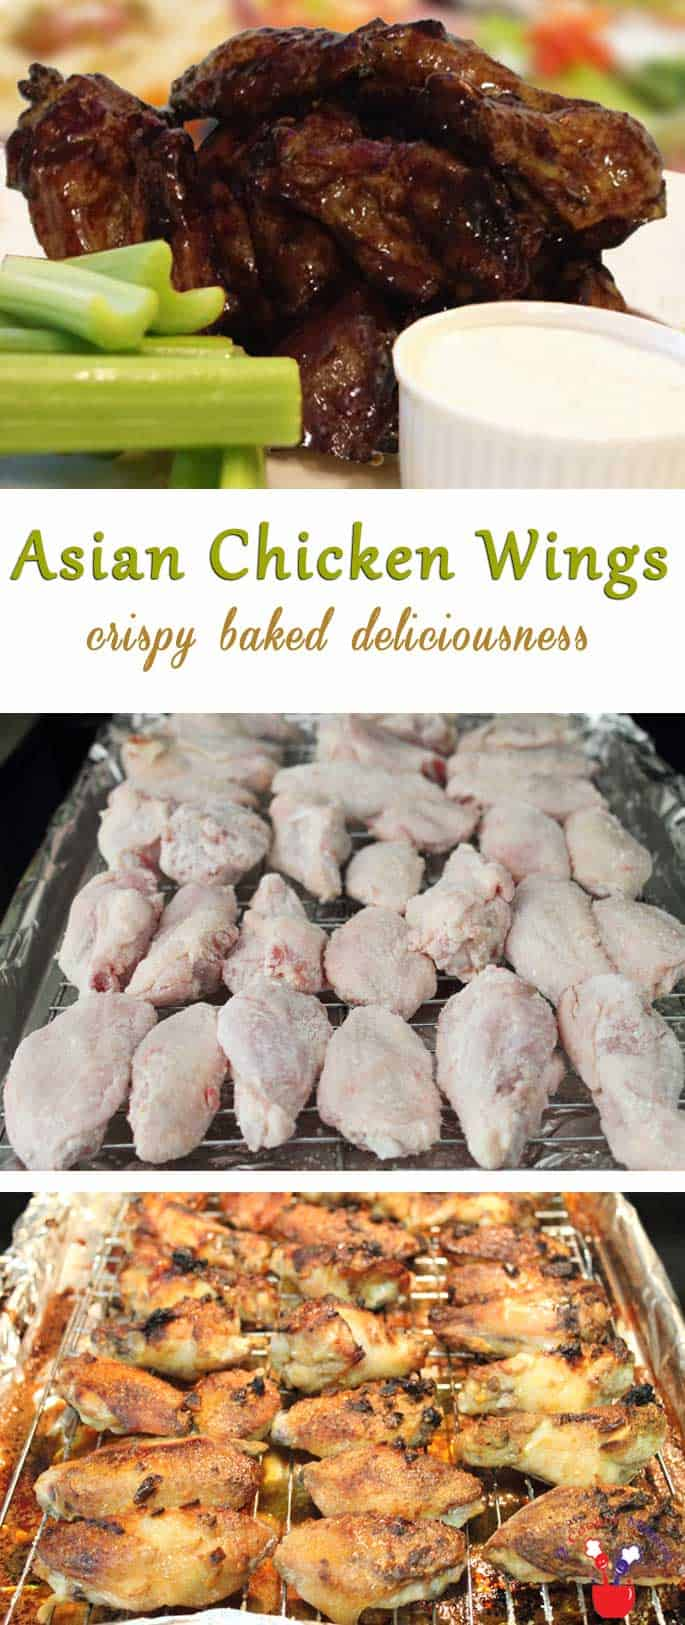 Asian Chicken Wings | 2 Cookin Mamas These Asian Chicken Wings will sate your wing craving & your appetite. Baked instead of fried, with a Asian inspired sauce, they are also super delicious!